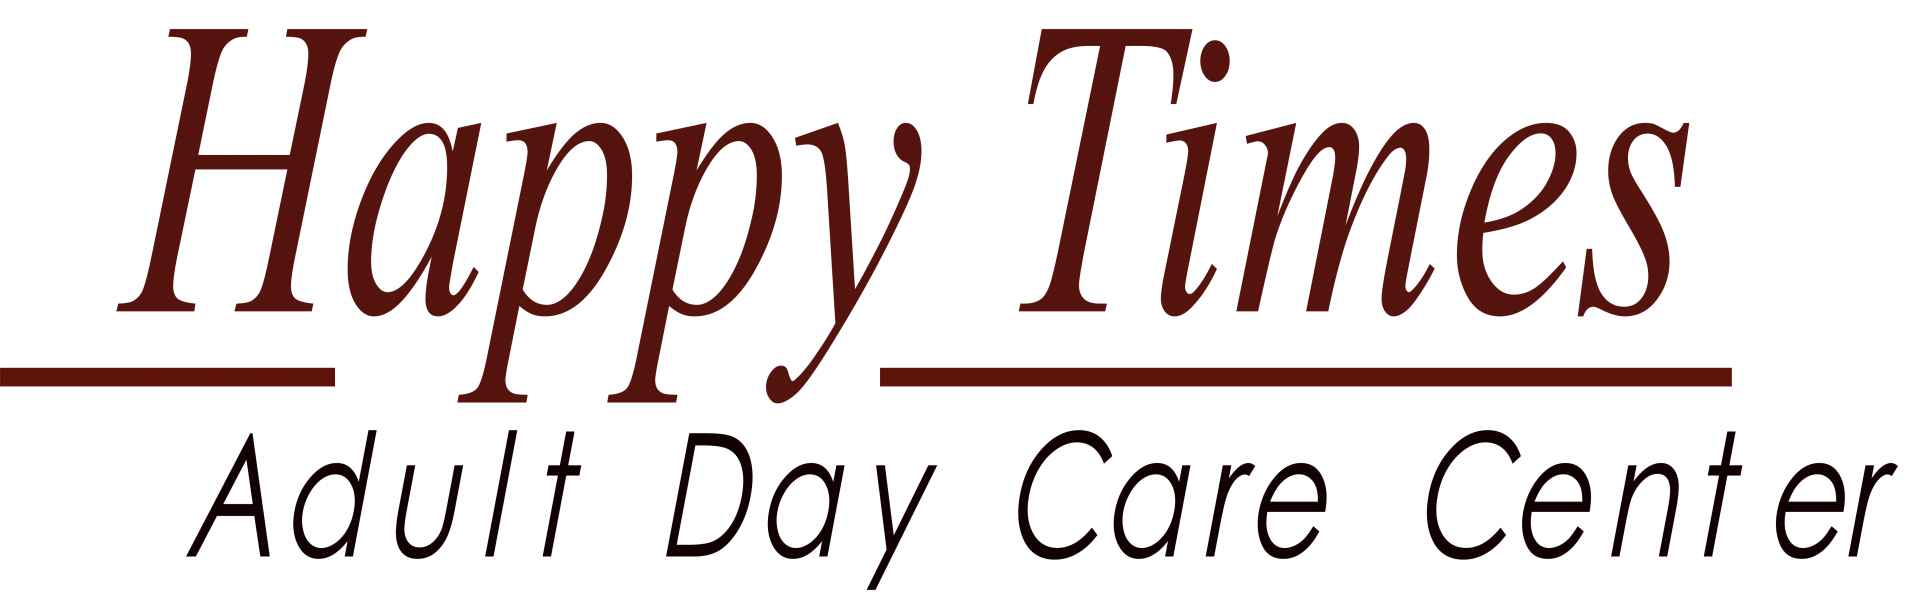 Happy Times Adult Day Care Center